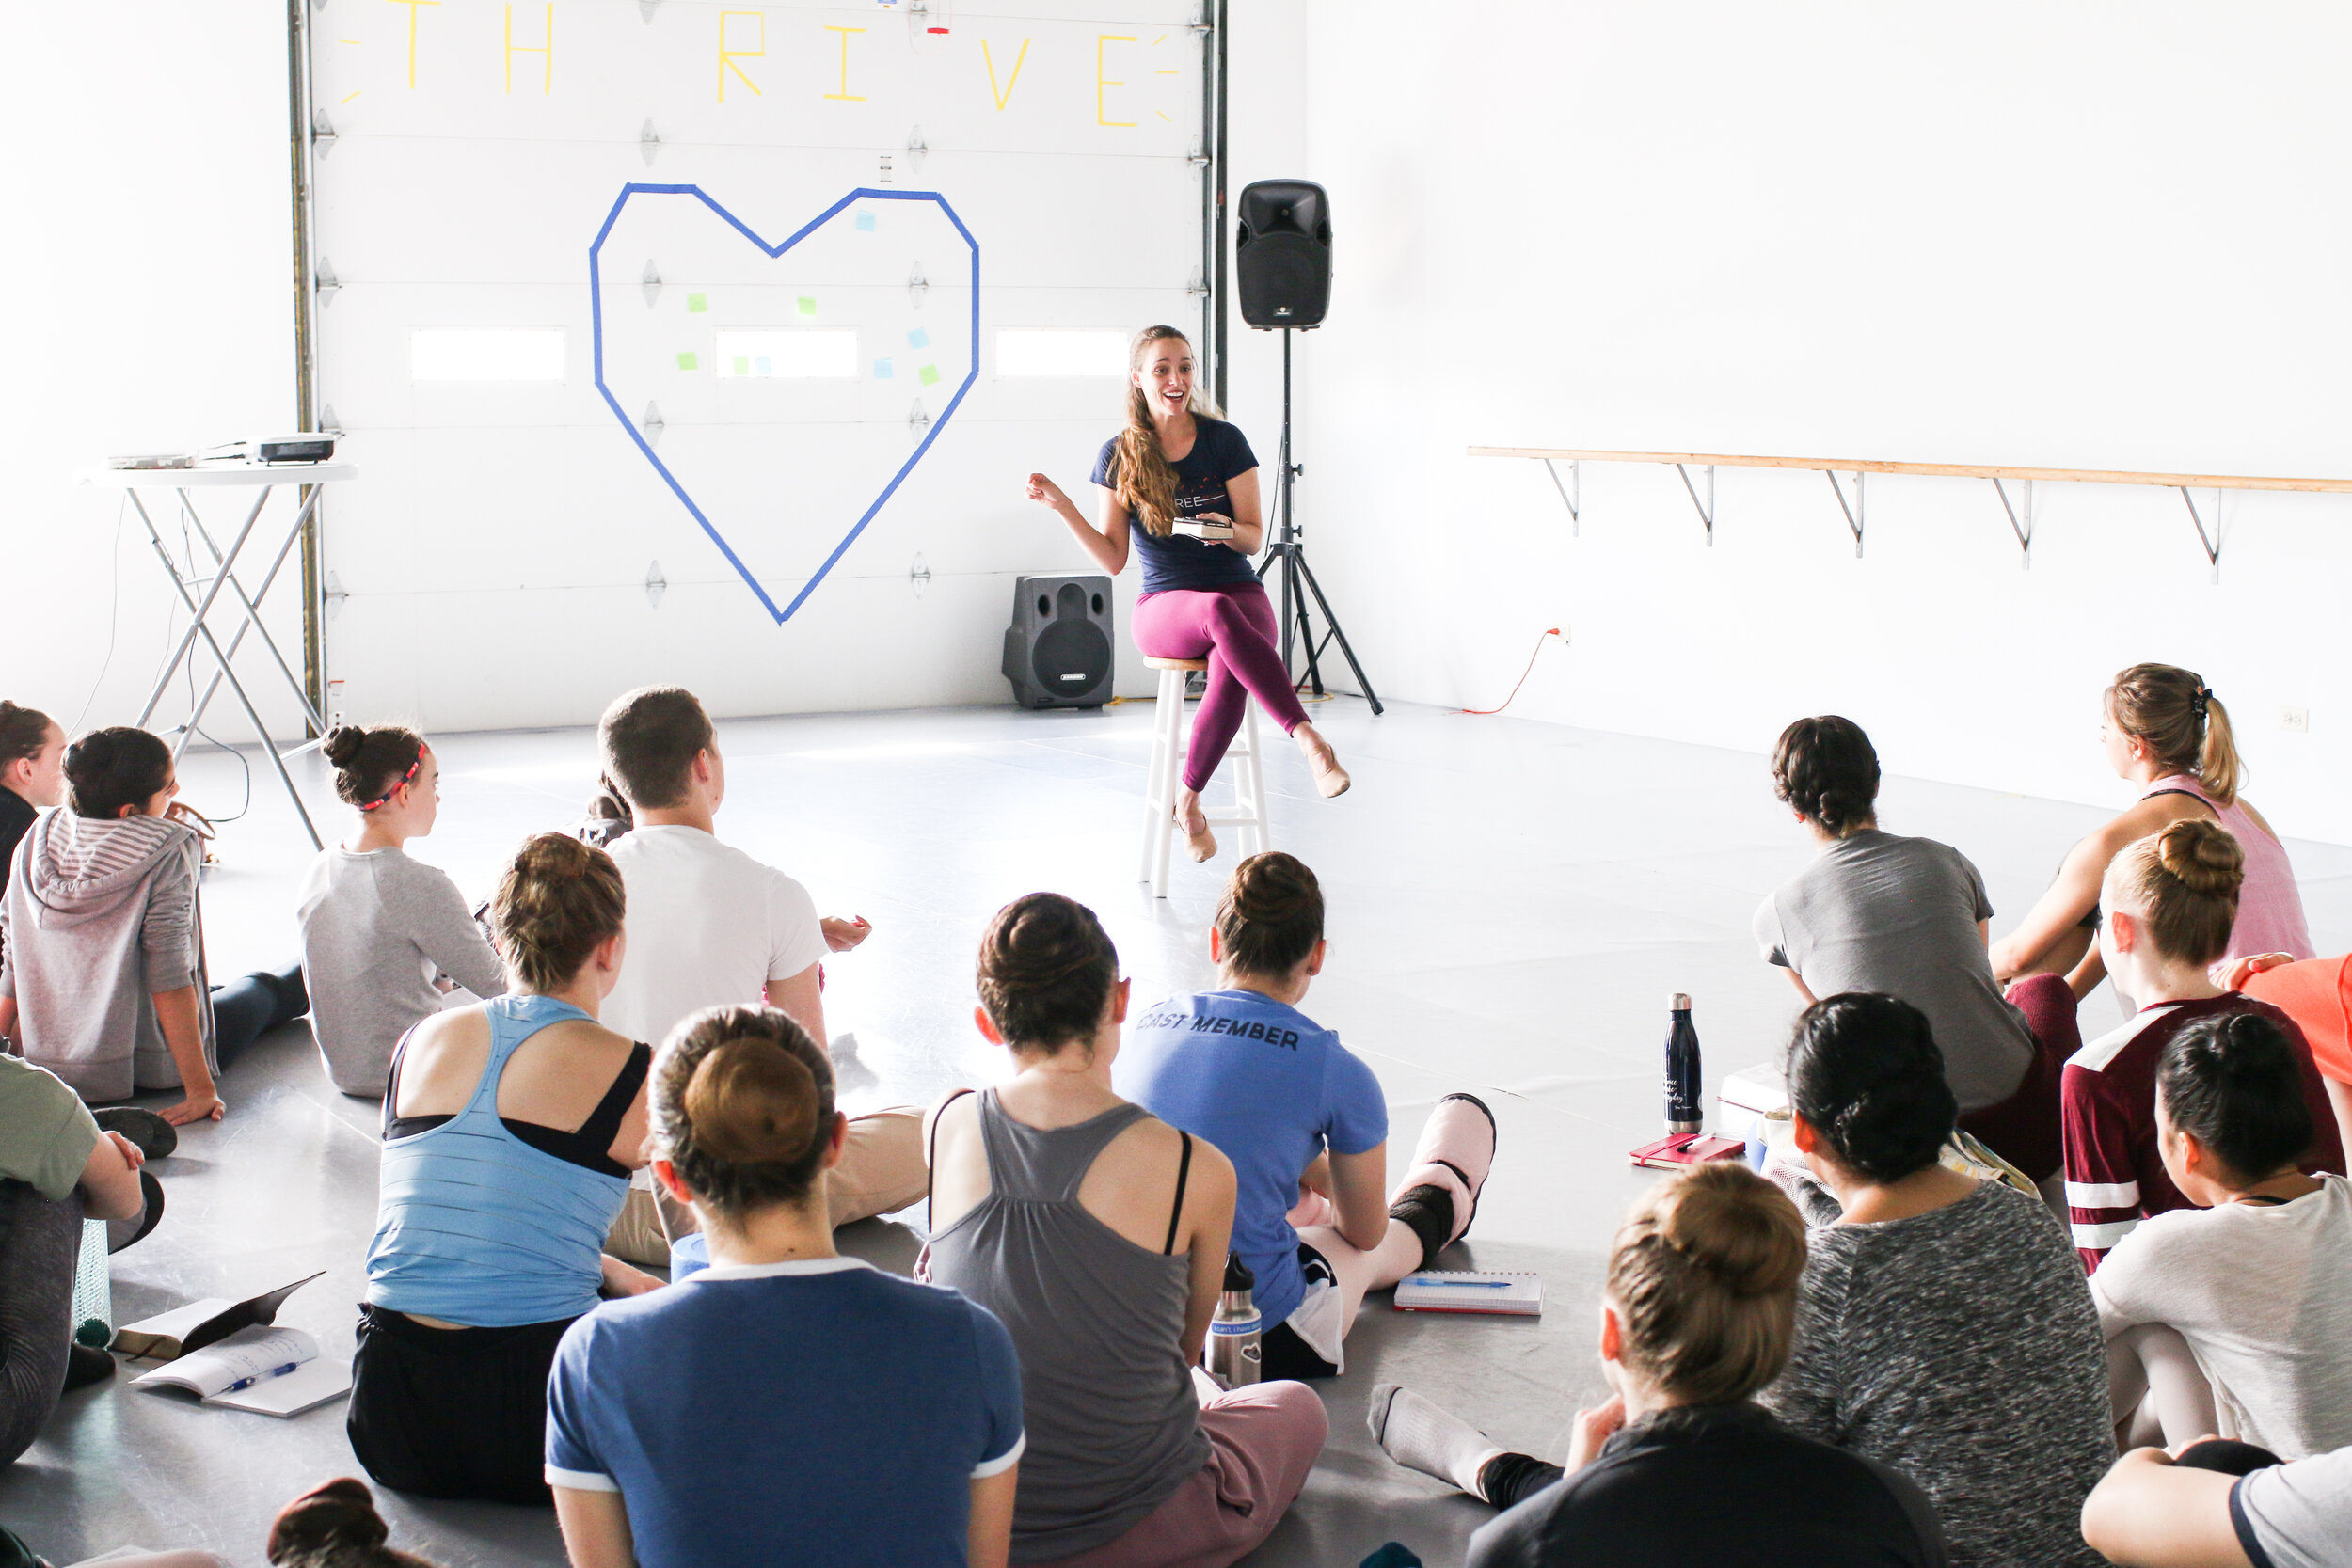 Conversation of Life and Faith - Daily times are set aside for Bible study and small group fellowship, allowing dancers to gain spiritual refreshment and explore the intersection of art and faith.